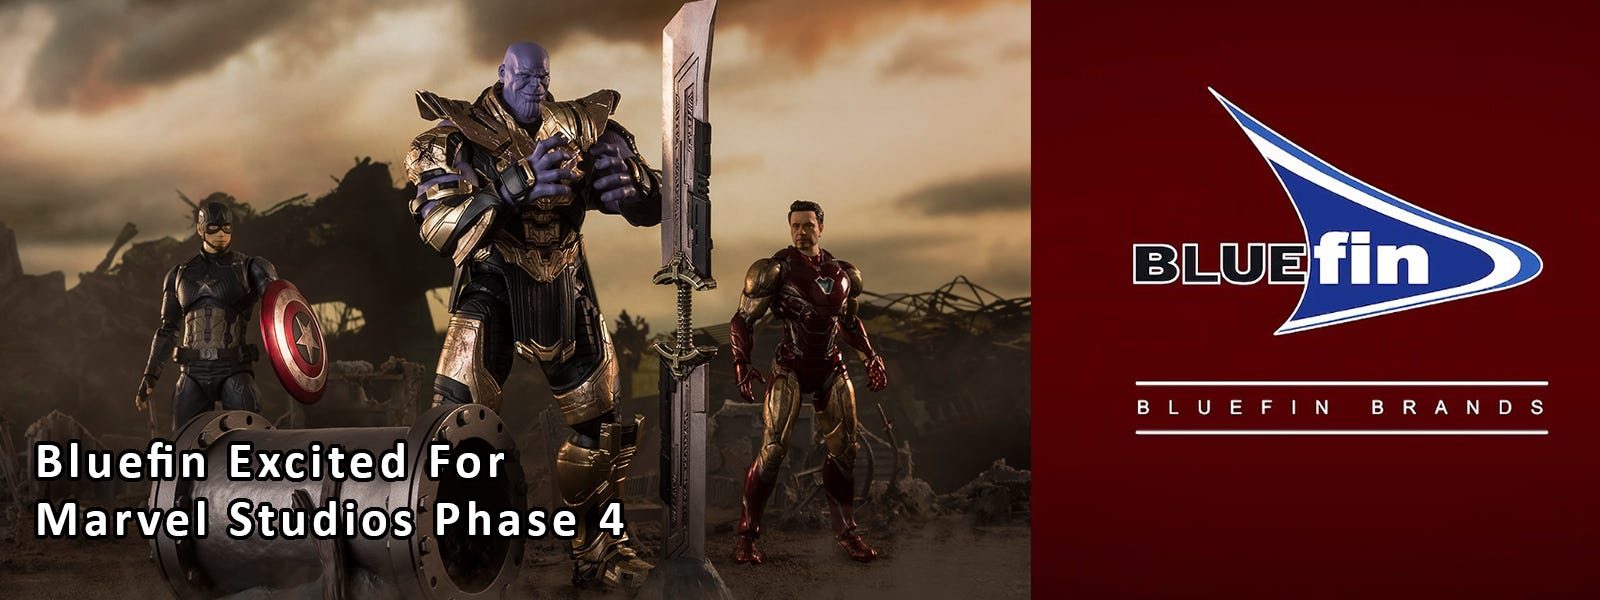 Bluefin Excited For Marvel Studios Phase 4